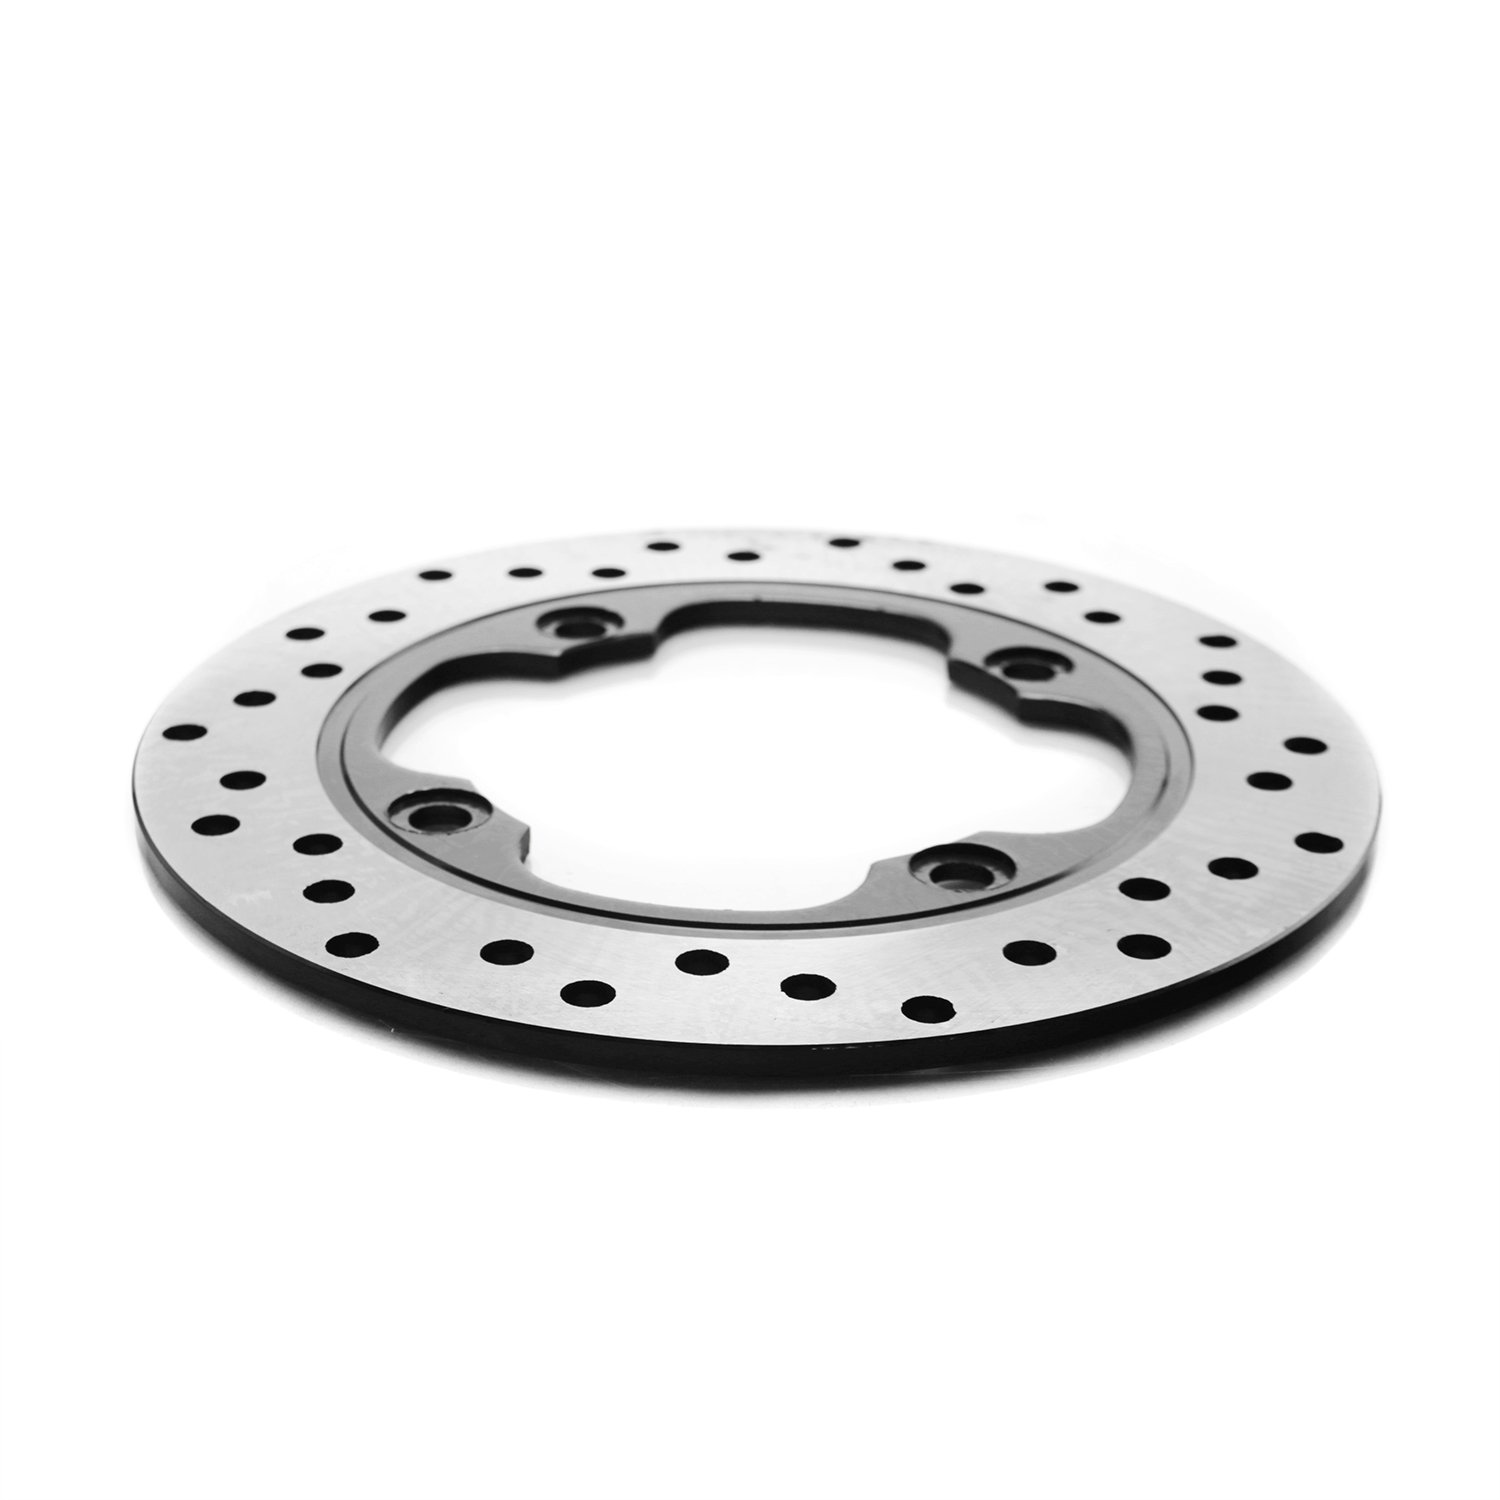 ANUESN Motorcycle Rear Brake Disc Fit For HONDA CBR250 CBR400 CBR600 CBR900 CBR1000 by ANUESN (Image #3)